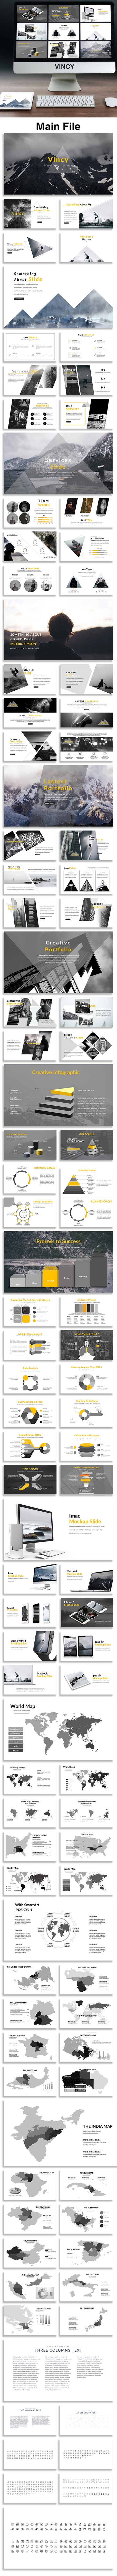 Vincy - Creative PowerPoint Template - Creative PowerPoint Templates